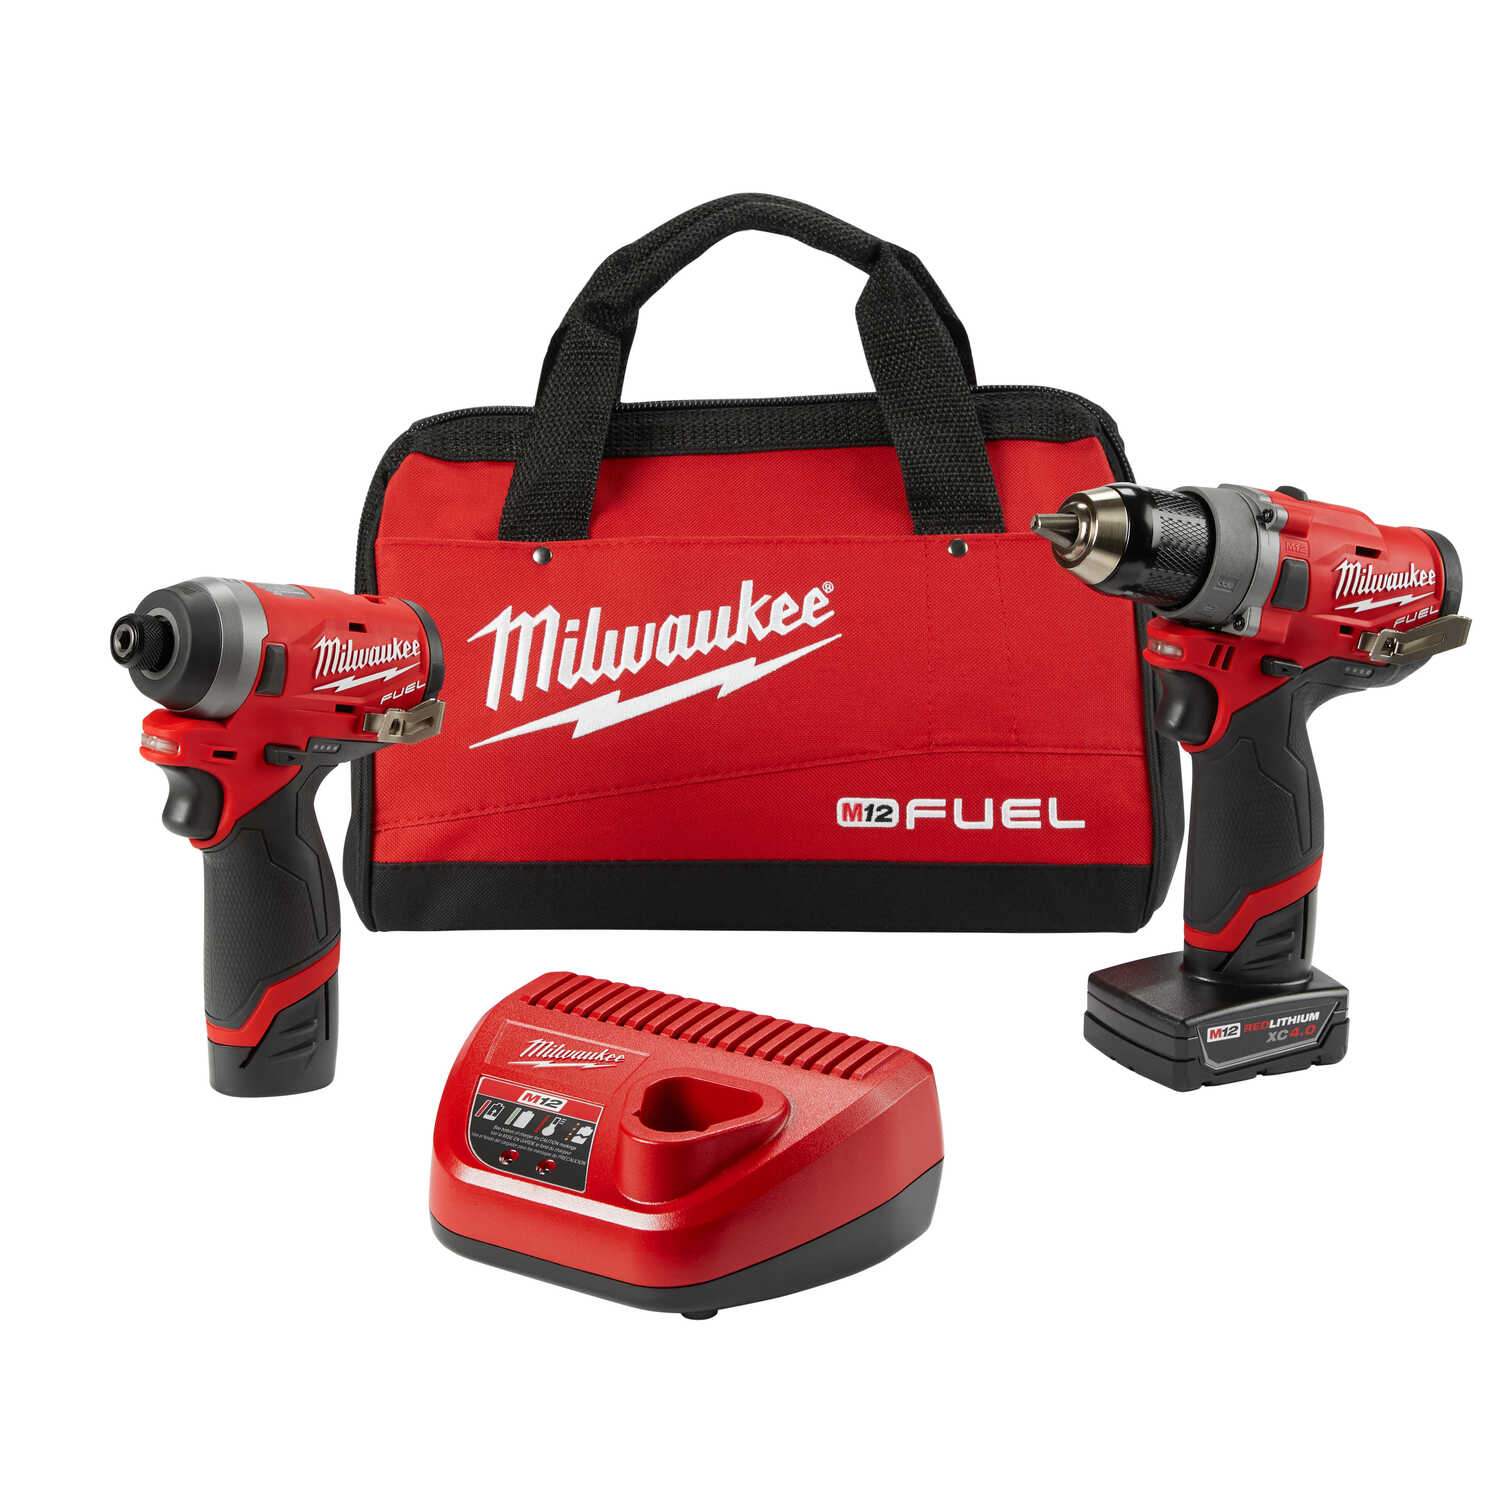 Milwaukee  M12 FUEL  Cordless  Brushless Drill/Driver and Impact Driver Combo Kit  12 volt 4 amps